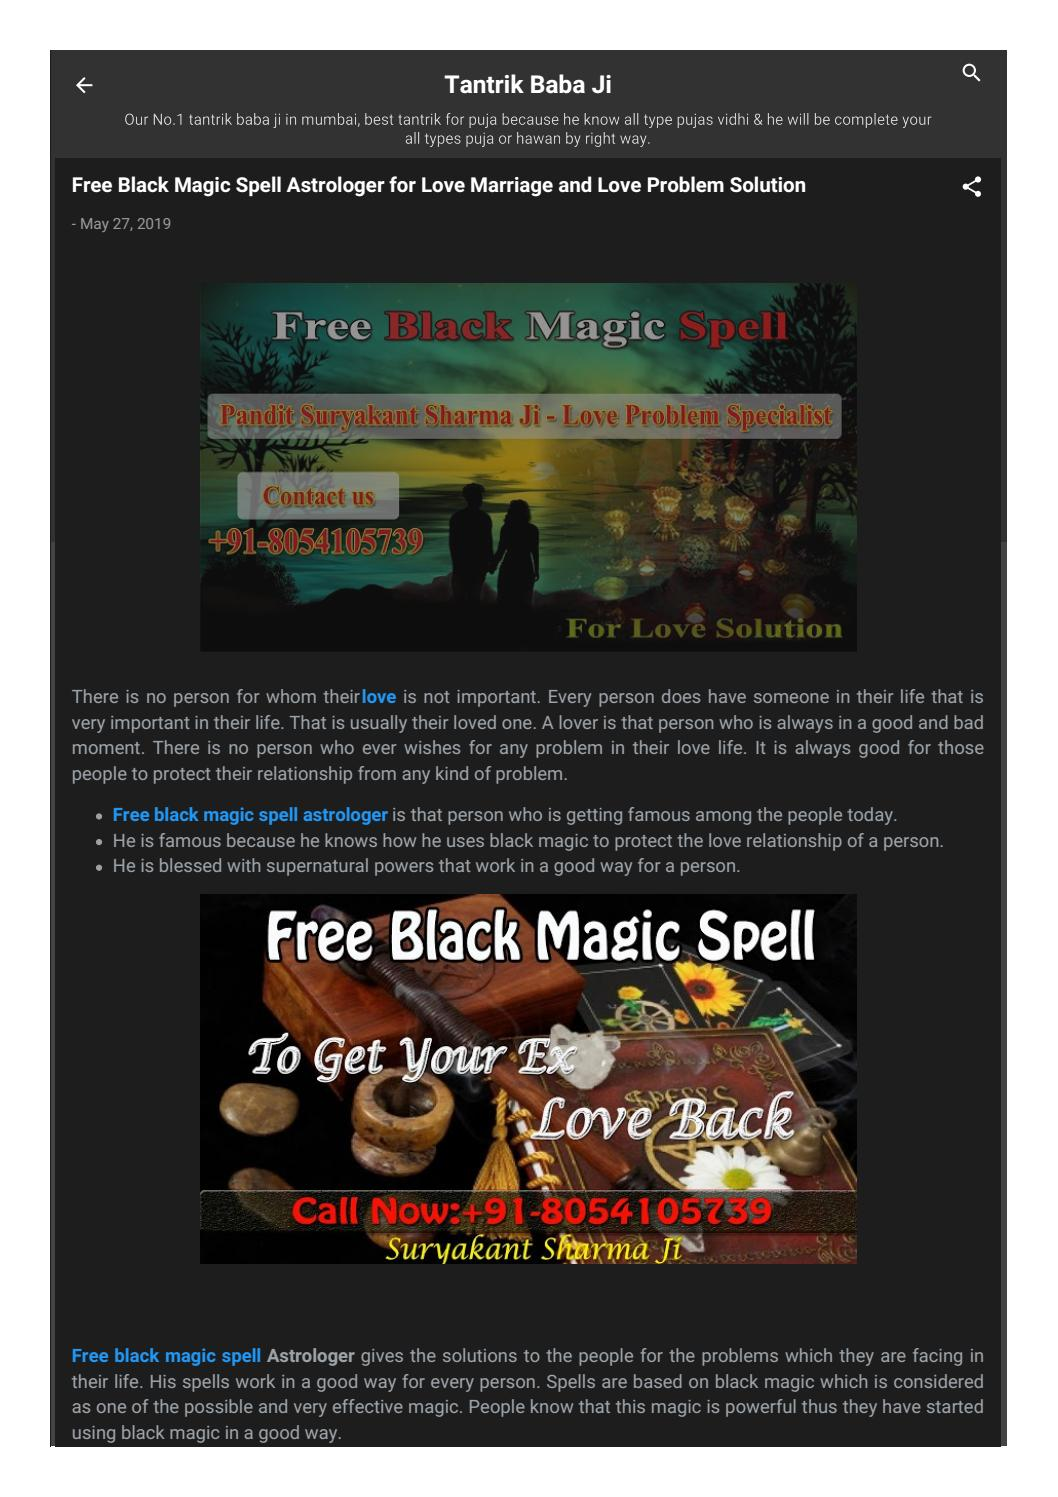 Free Black Magic Spell Show you the best path to resolve your love Problems